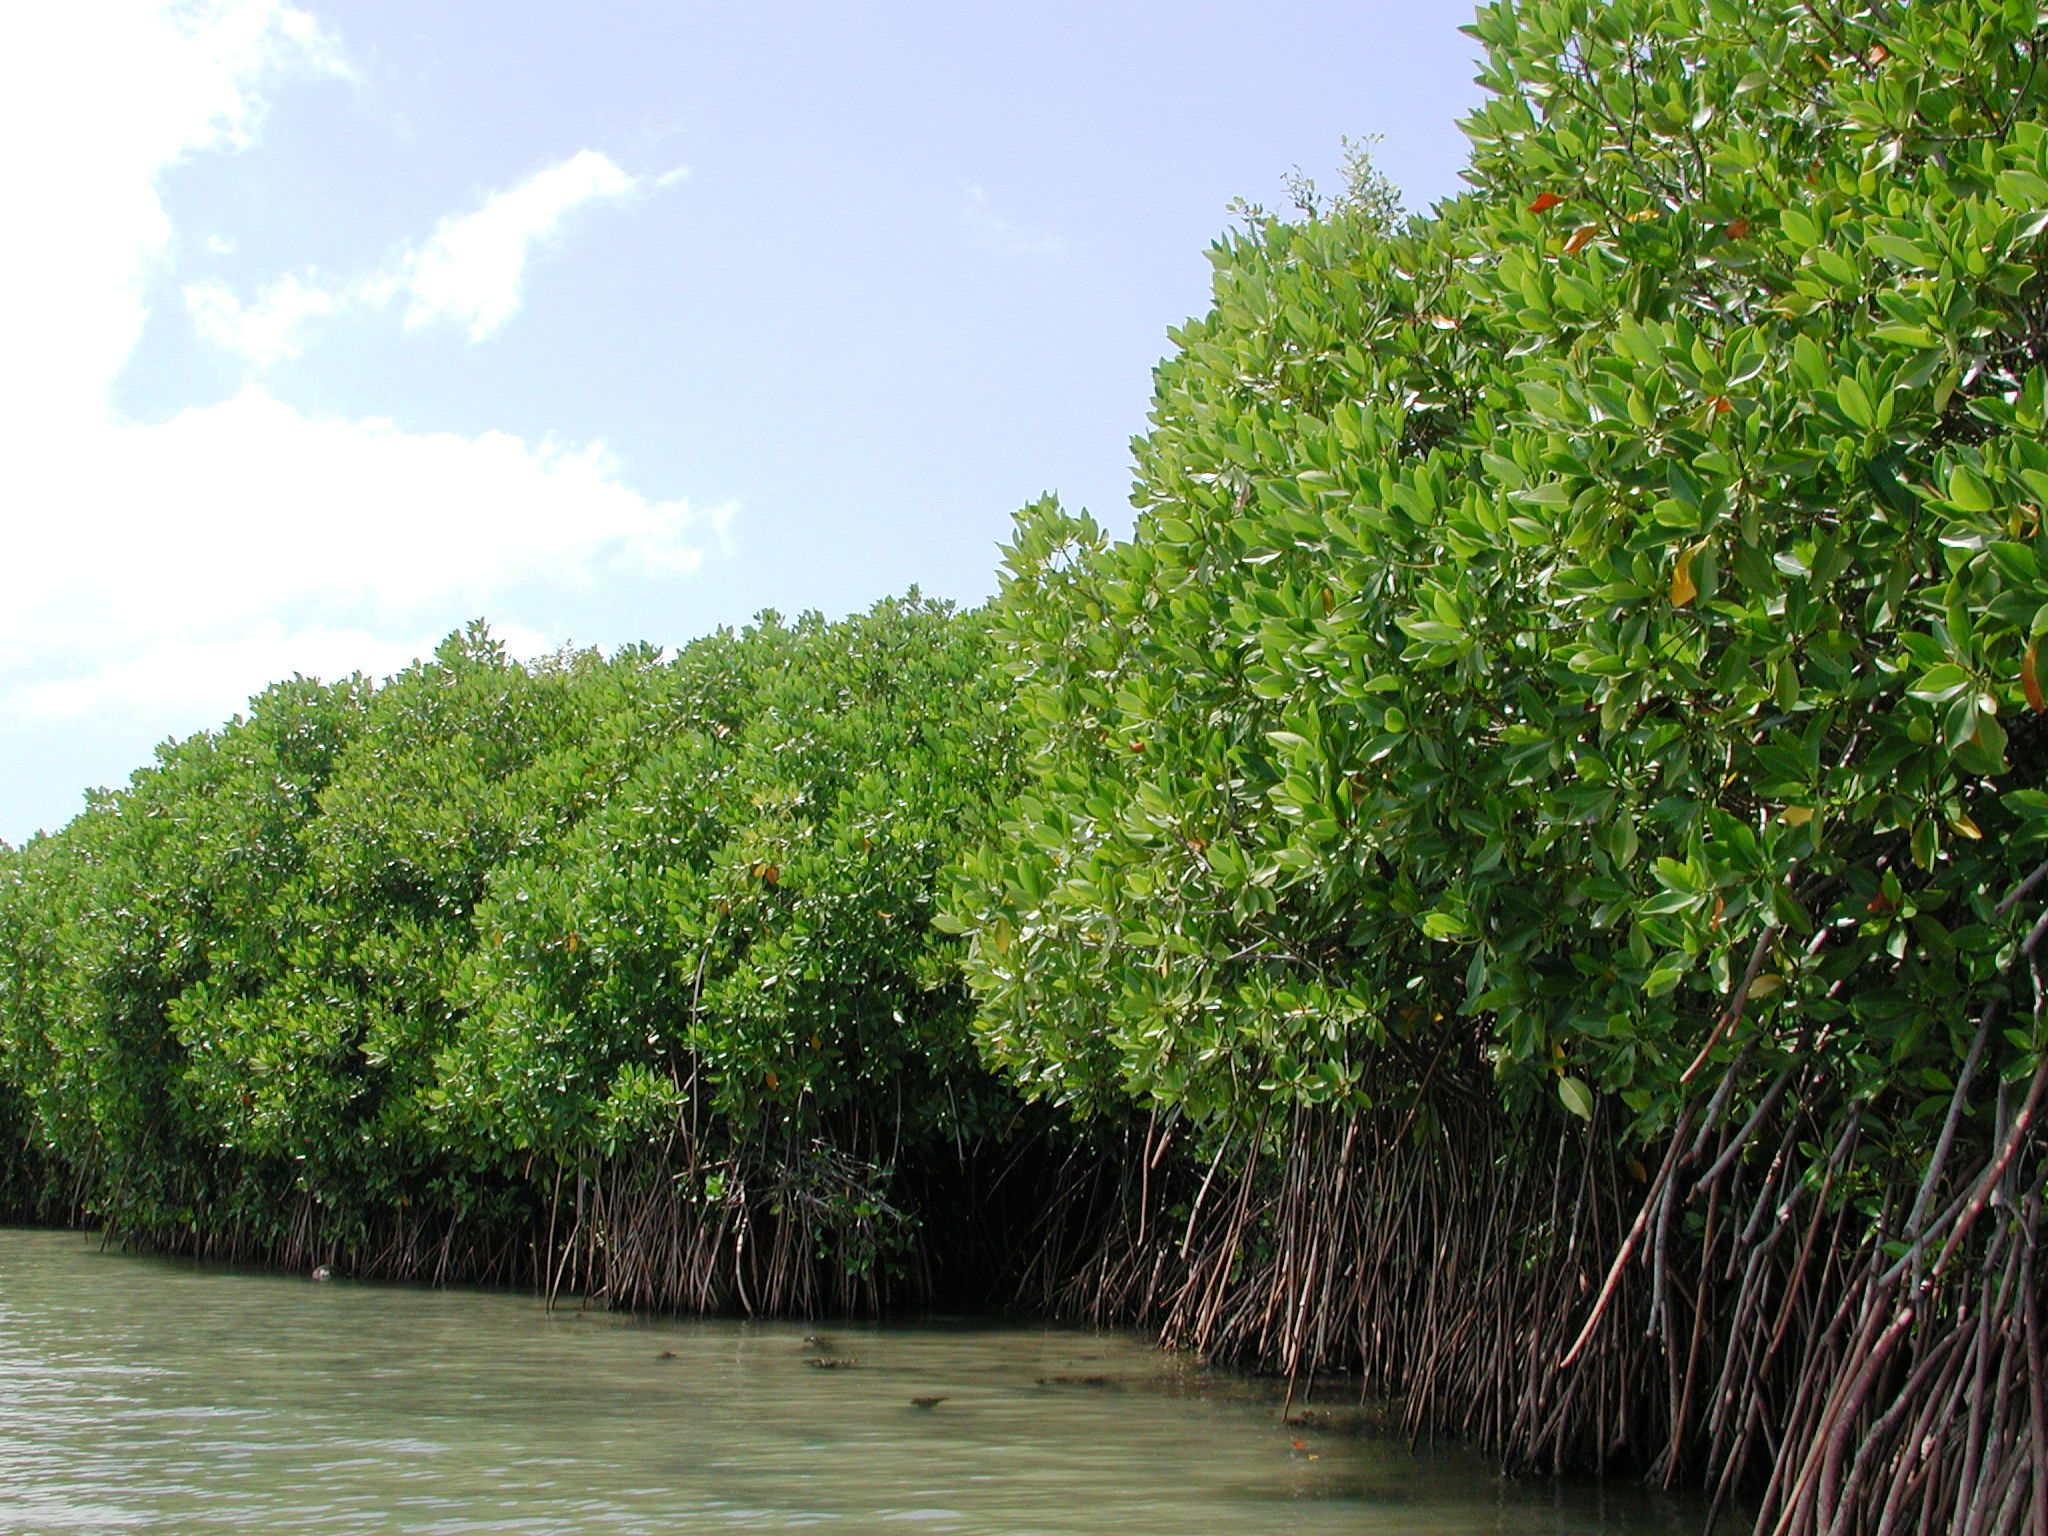 View of mangrove forest-